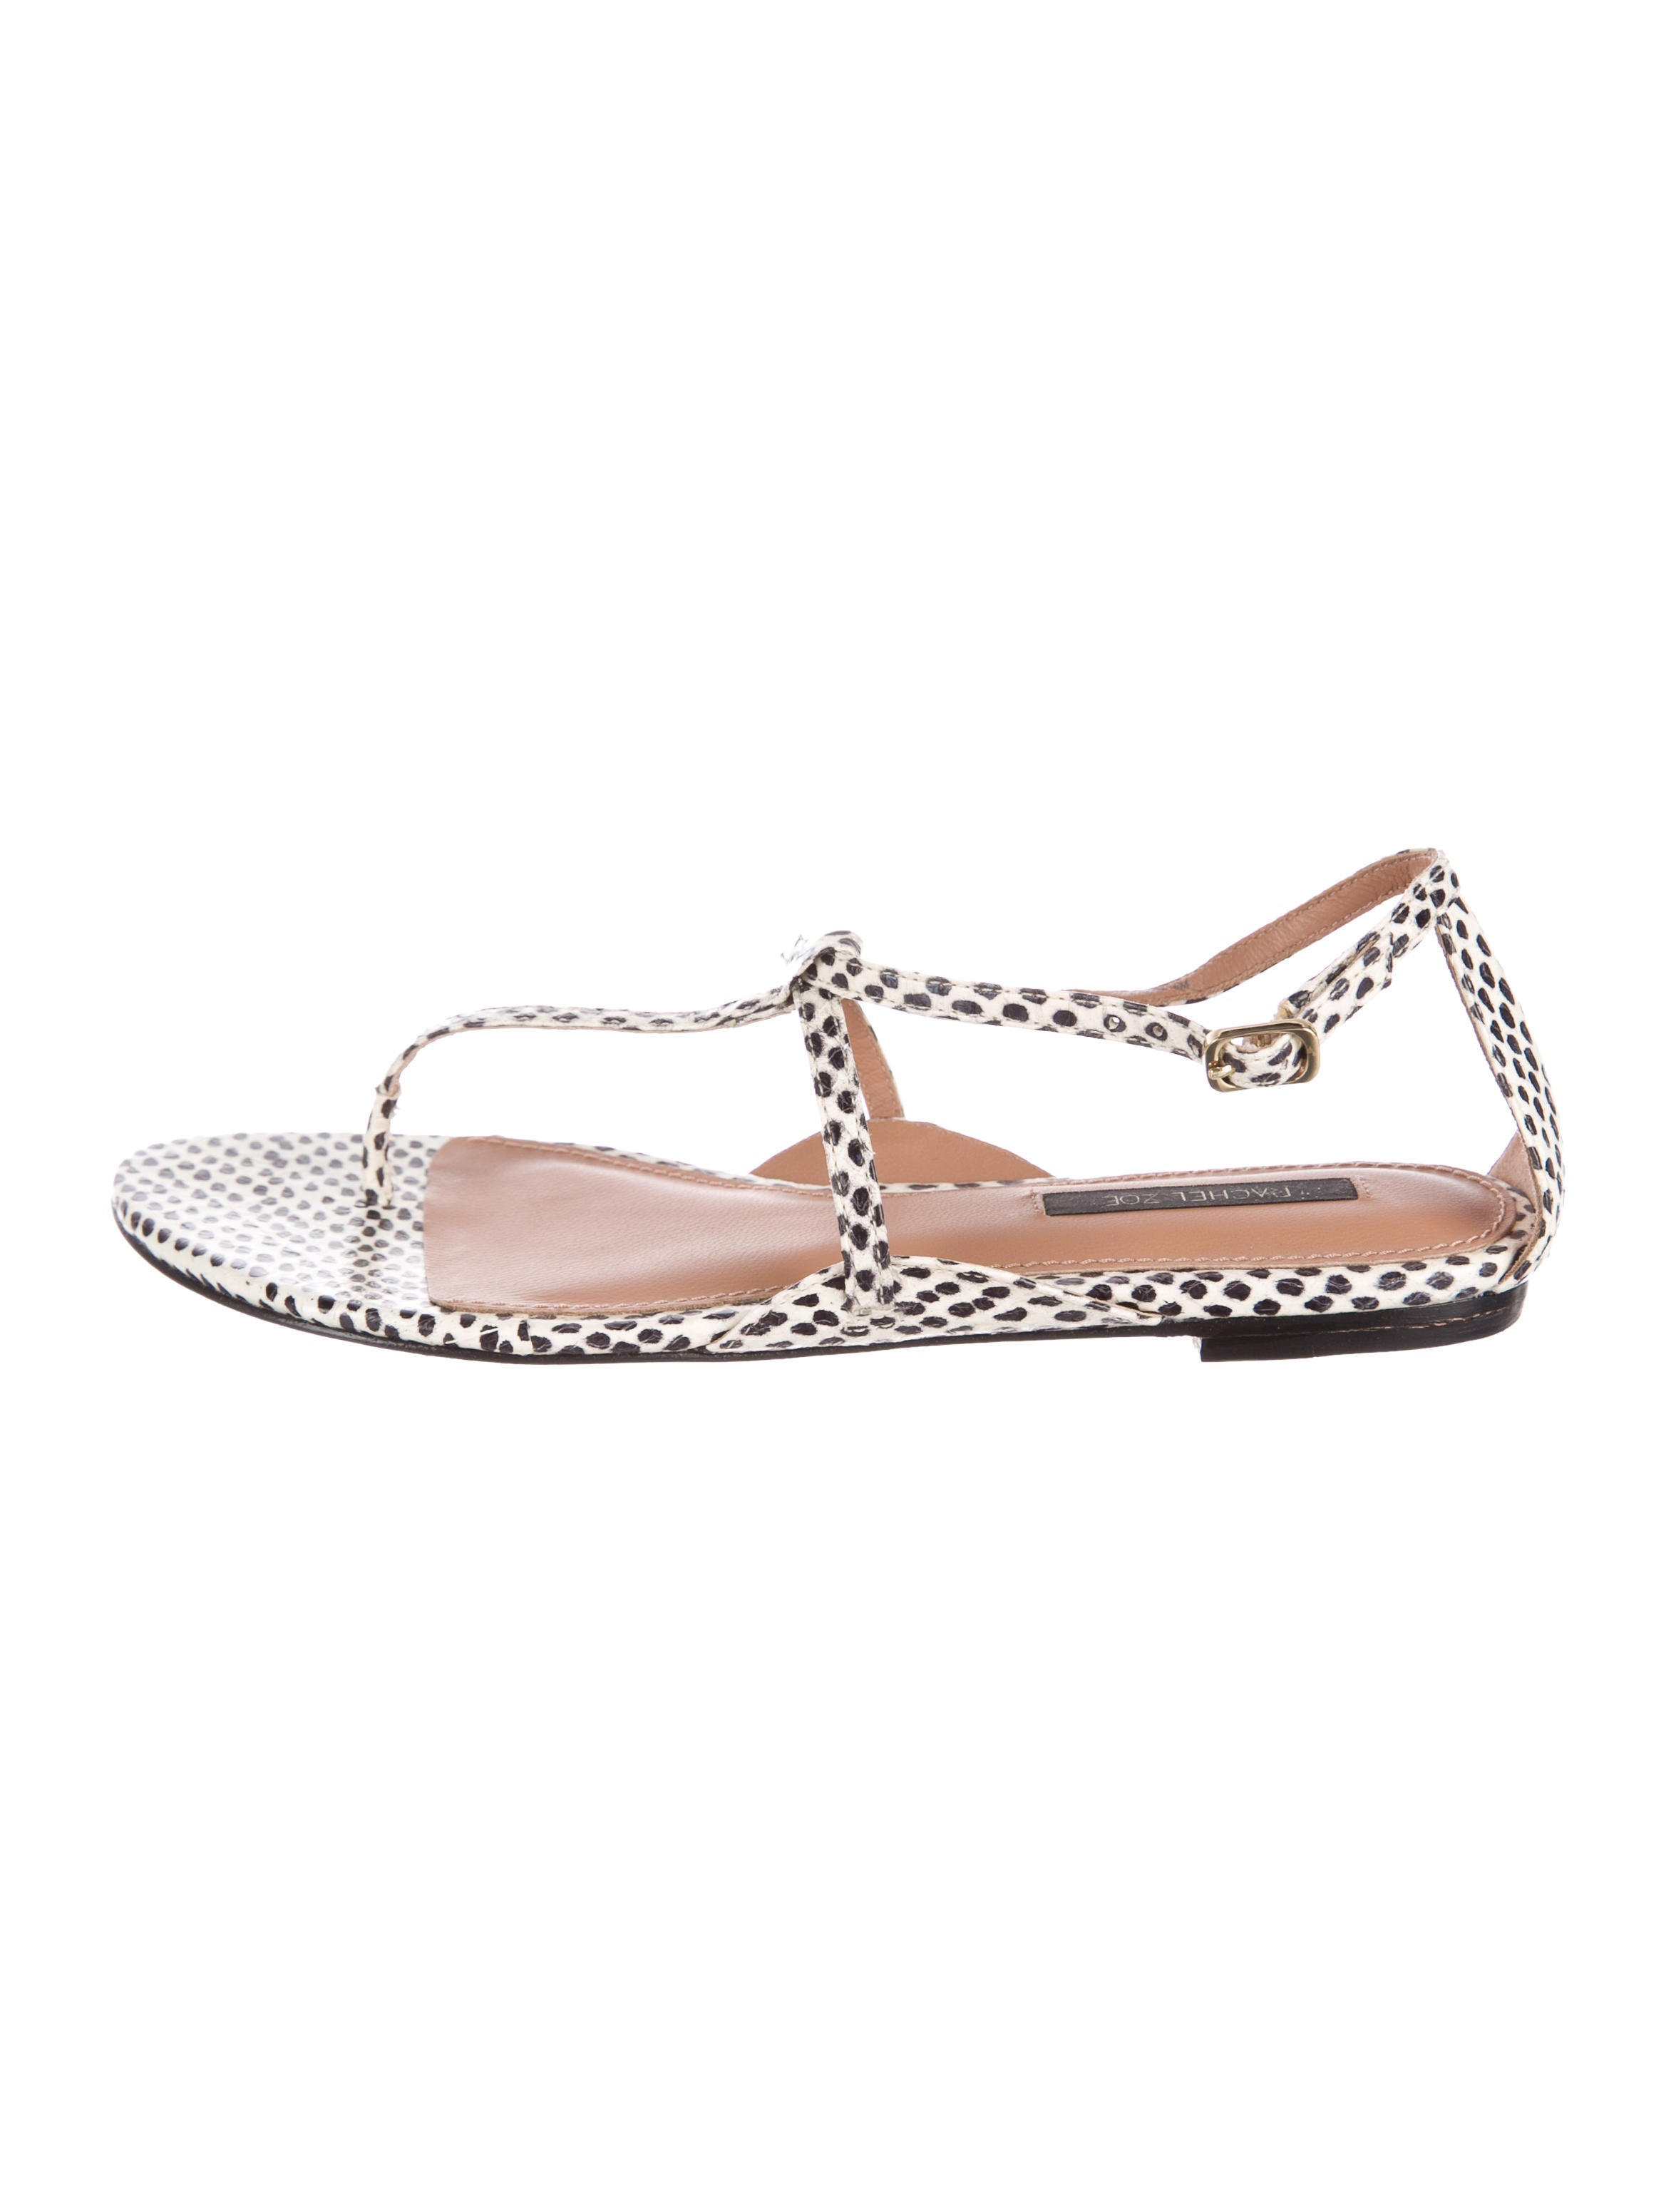 e5f804429 Rachel Zoe Gwen Snakeskin Sandals w  Tags - Shoes - WRL30694